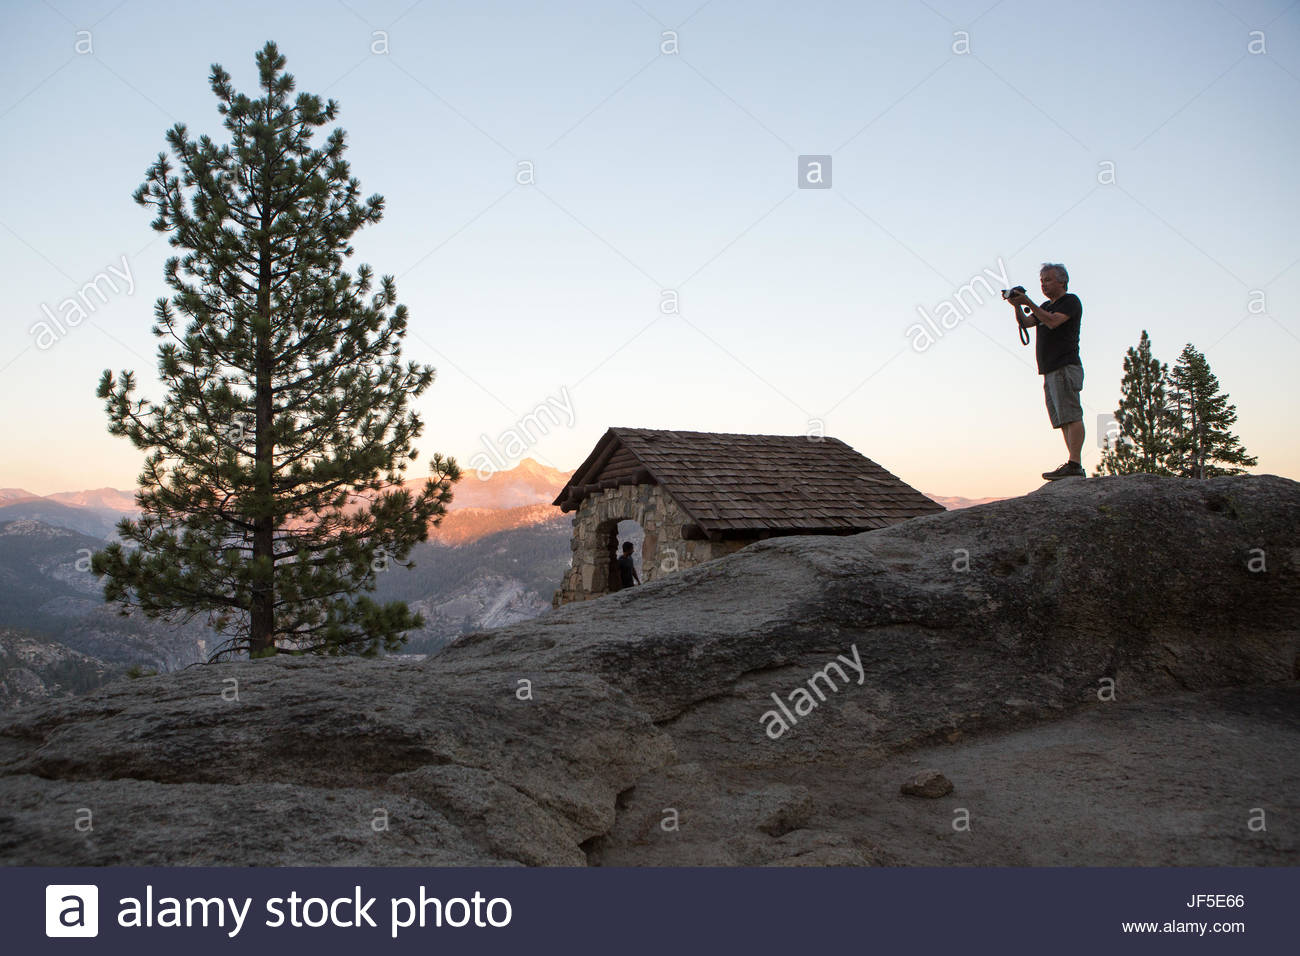 A hiker at Glacier Point takes a moment to photograph his surroundings. - Stock Image